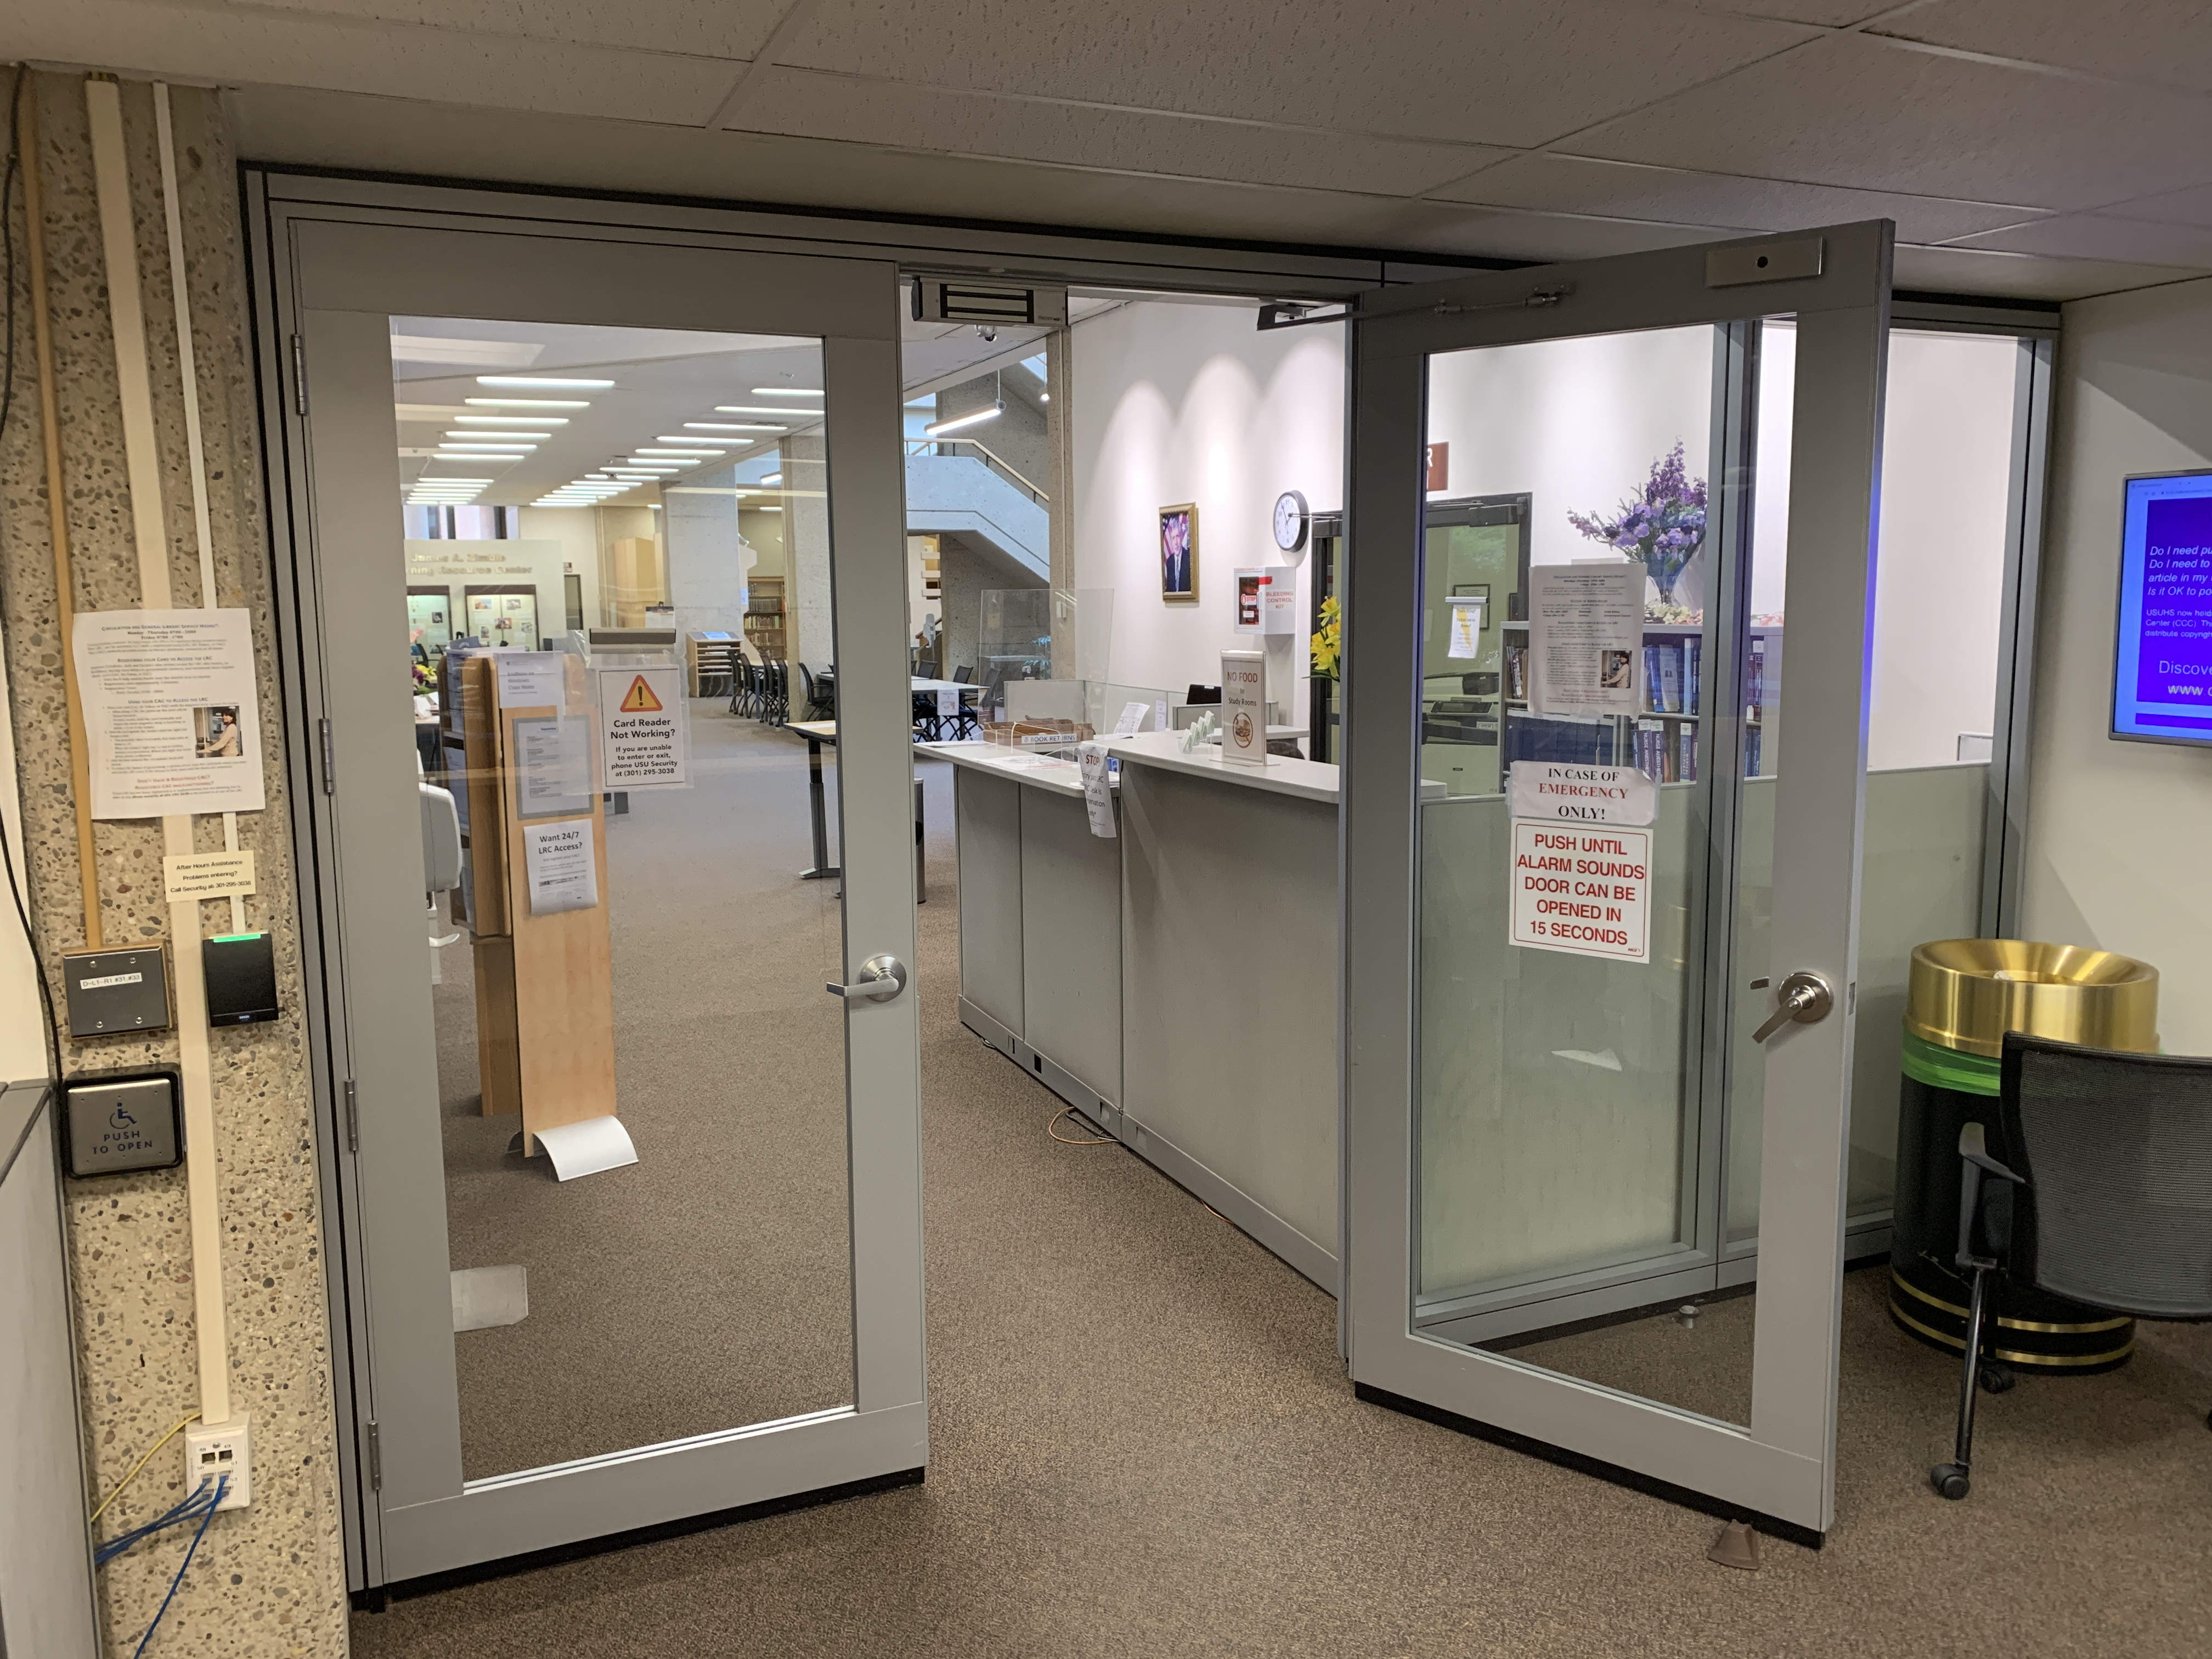 A picture of the front entry doors to the Learning Resource Center. The CAC Reader is to the left of the open door.